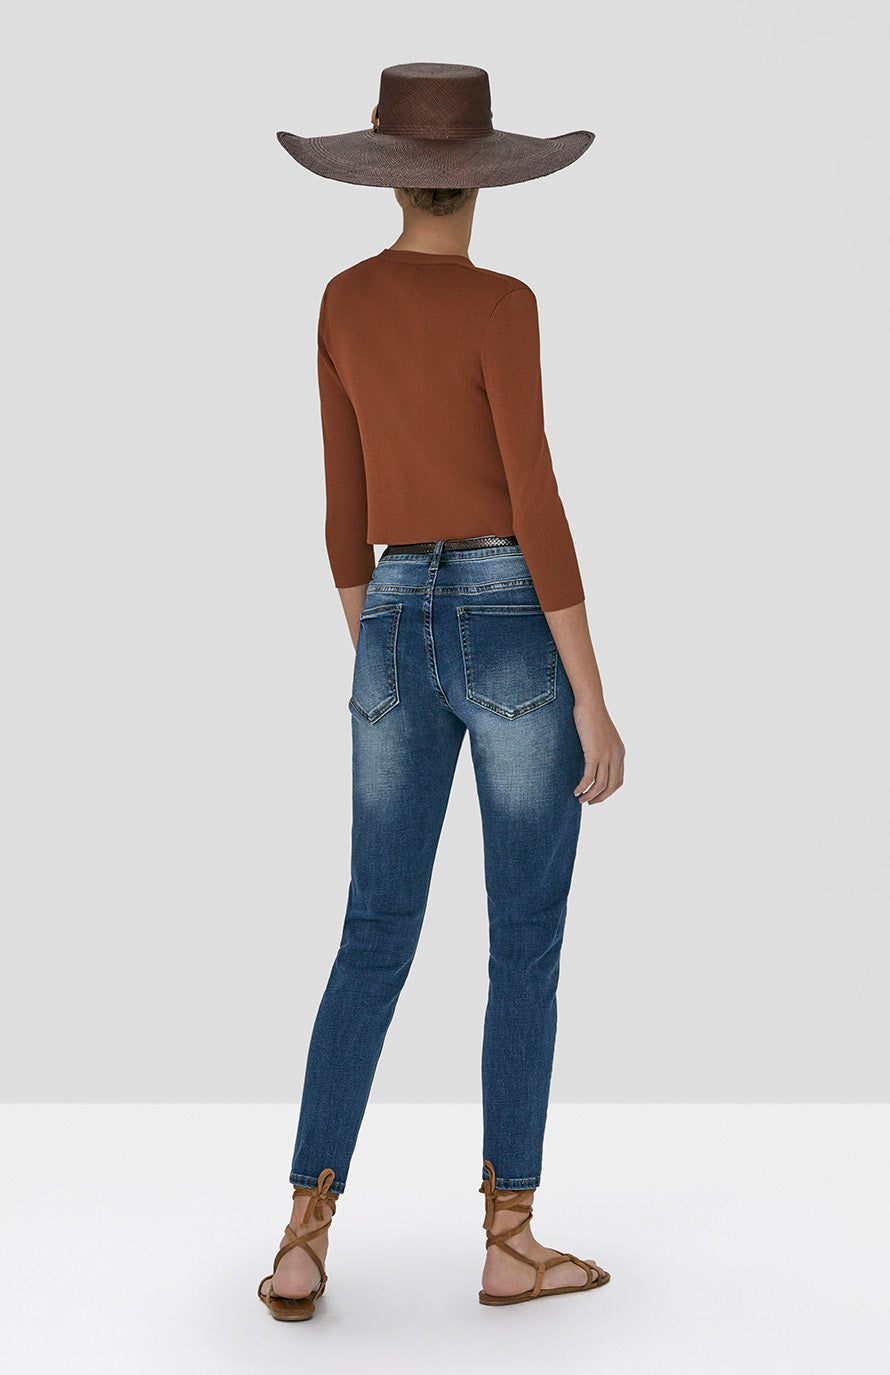 Alexis Petal Cardigan in Rust and Holston Denim Pant in Indigo Denim from Spring Summer 2020 - Rear View